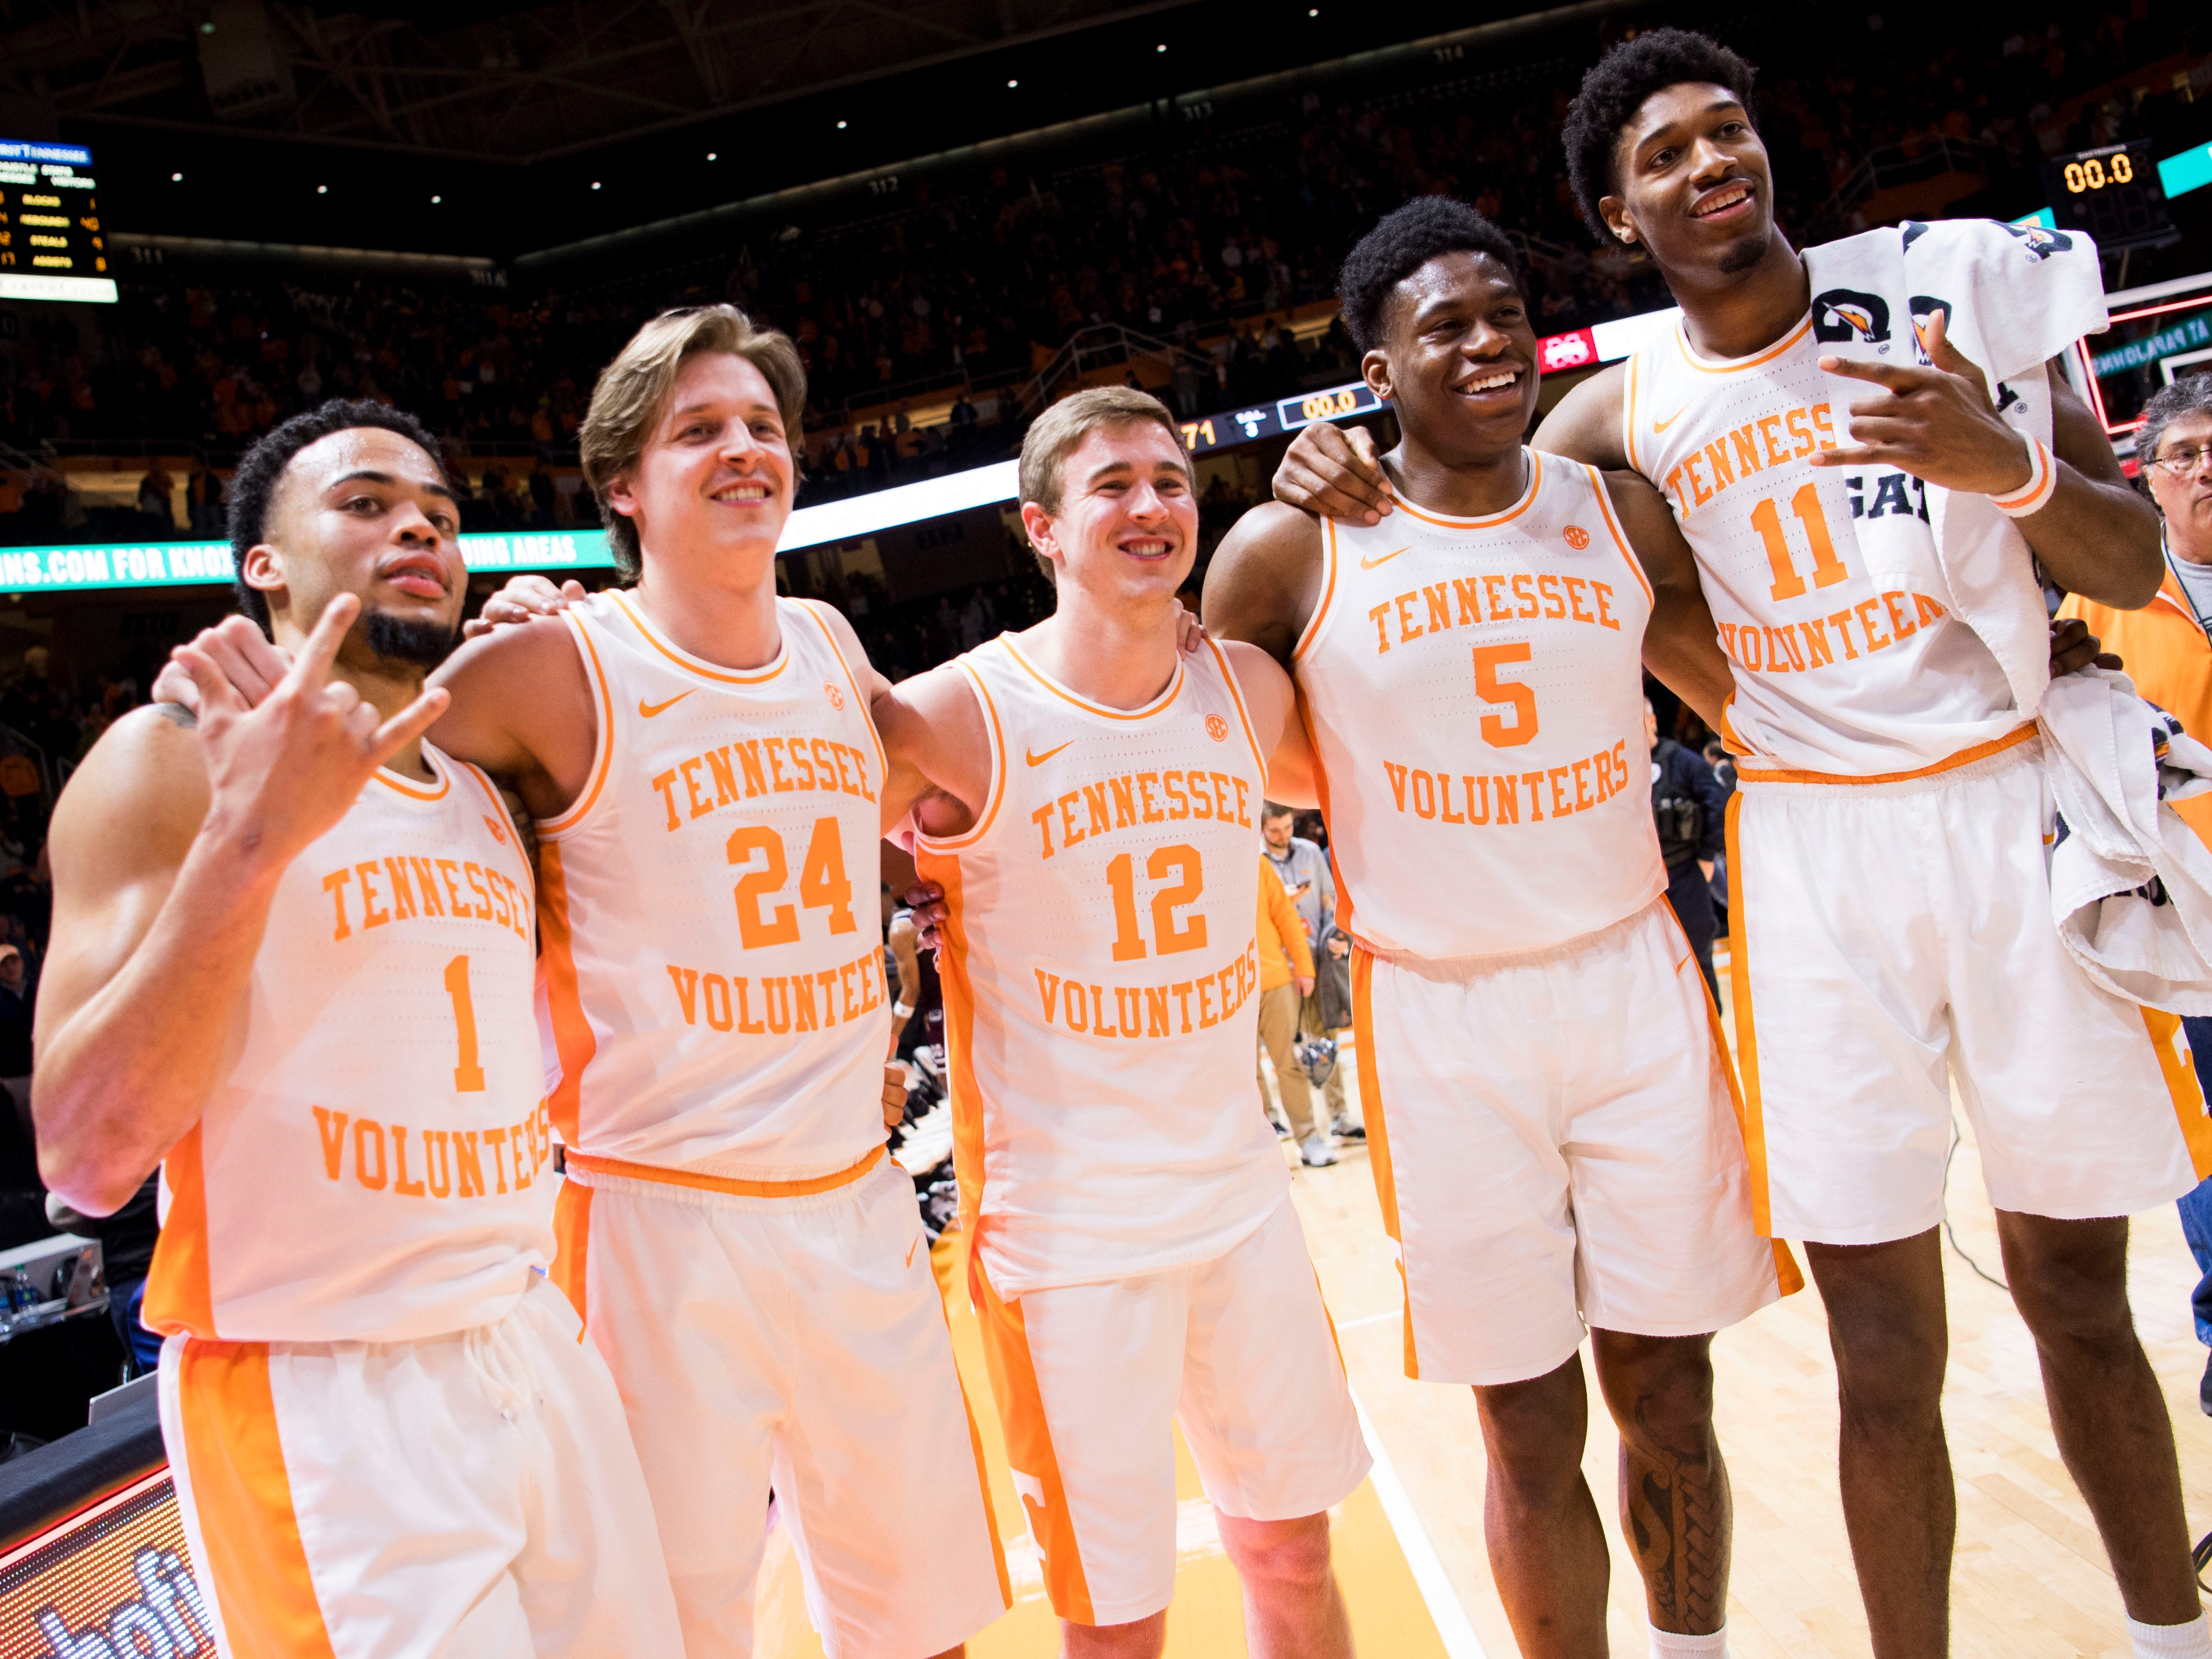 From left, Tennessee guard Lamonte Turner (1), Tennessee guard Lucas Campbell (24), Tennessee guard Brad Woodson (12), Tennessee guard Admiral Schofield (5) and Tennessee forward Kyle Alexander (11) after Tennessee's home finale against Mississippi State at Thompson-Boling Arena in Knoxville on Tuesday, March 5, 2019.